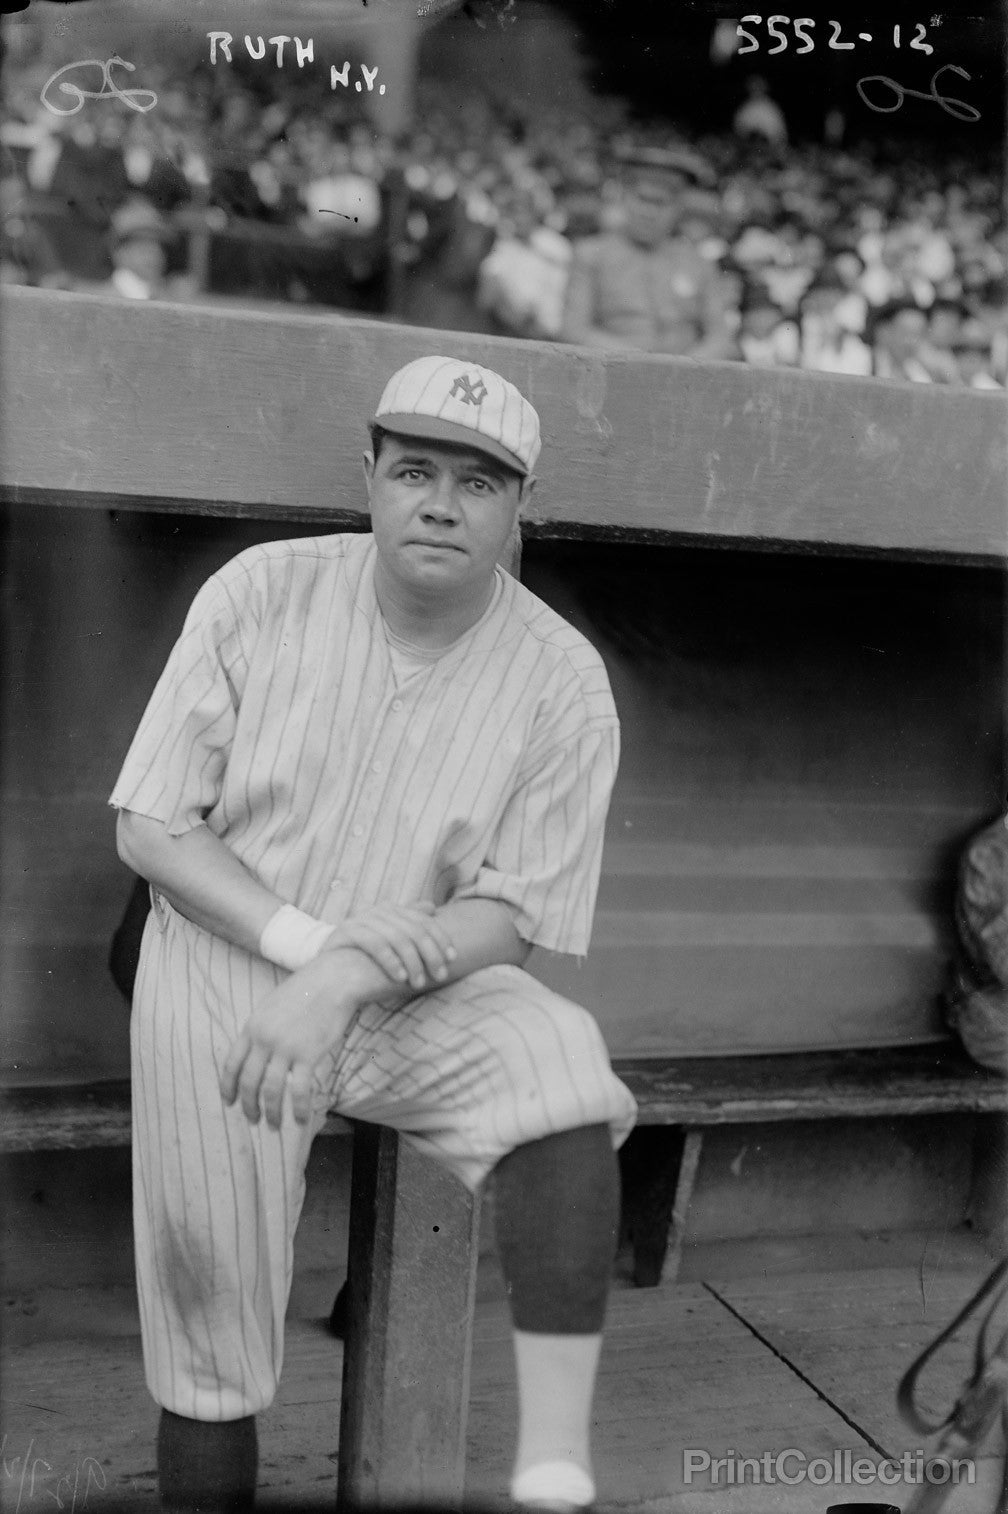 Print Collection Babe Ruth New York